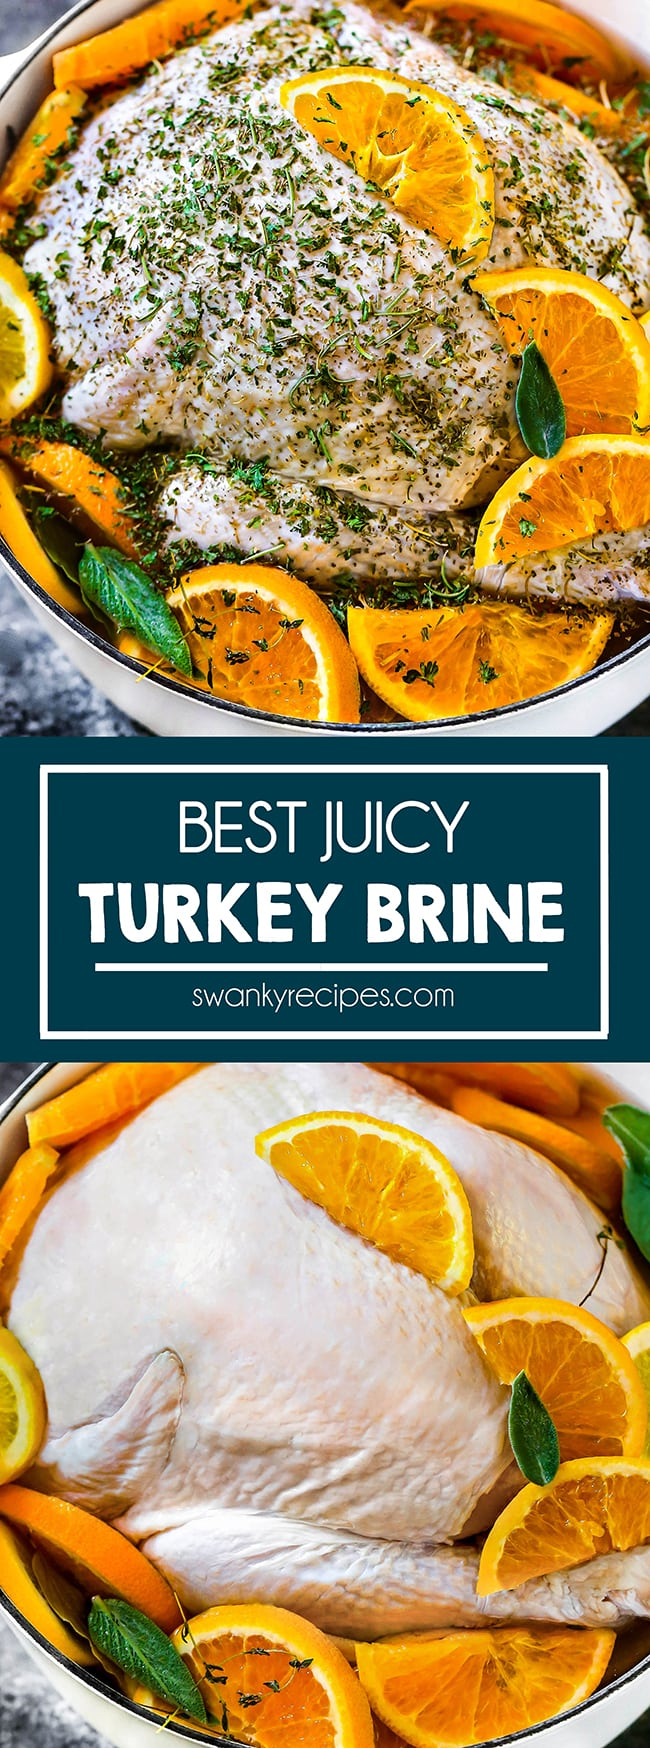 Turkey brine recipe - Whole turkey in a dutch oven with slices of orange and lemon on top and on the sides. Green herbs sprinkled in pot and on top of turkey. Served on a cookie sheet. Text in center in blue border reads Best Juicy Turkey Brine Second photo is of the raw whole turkey in white stock pot with orange slices and a few green herb leaves on top.